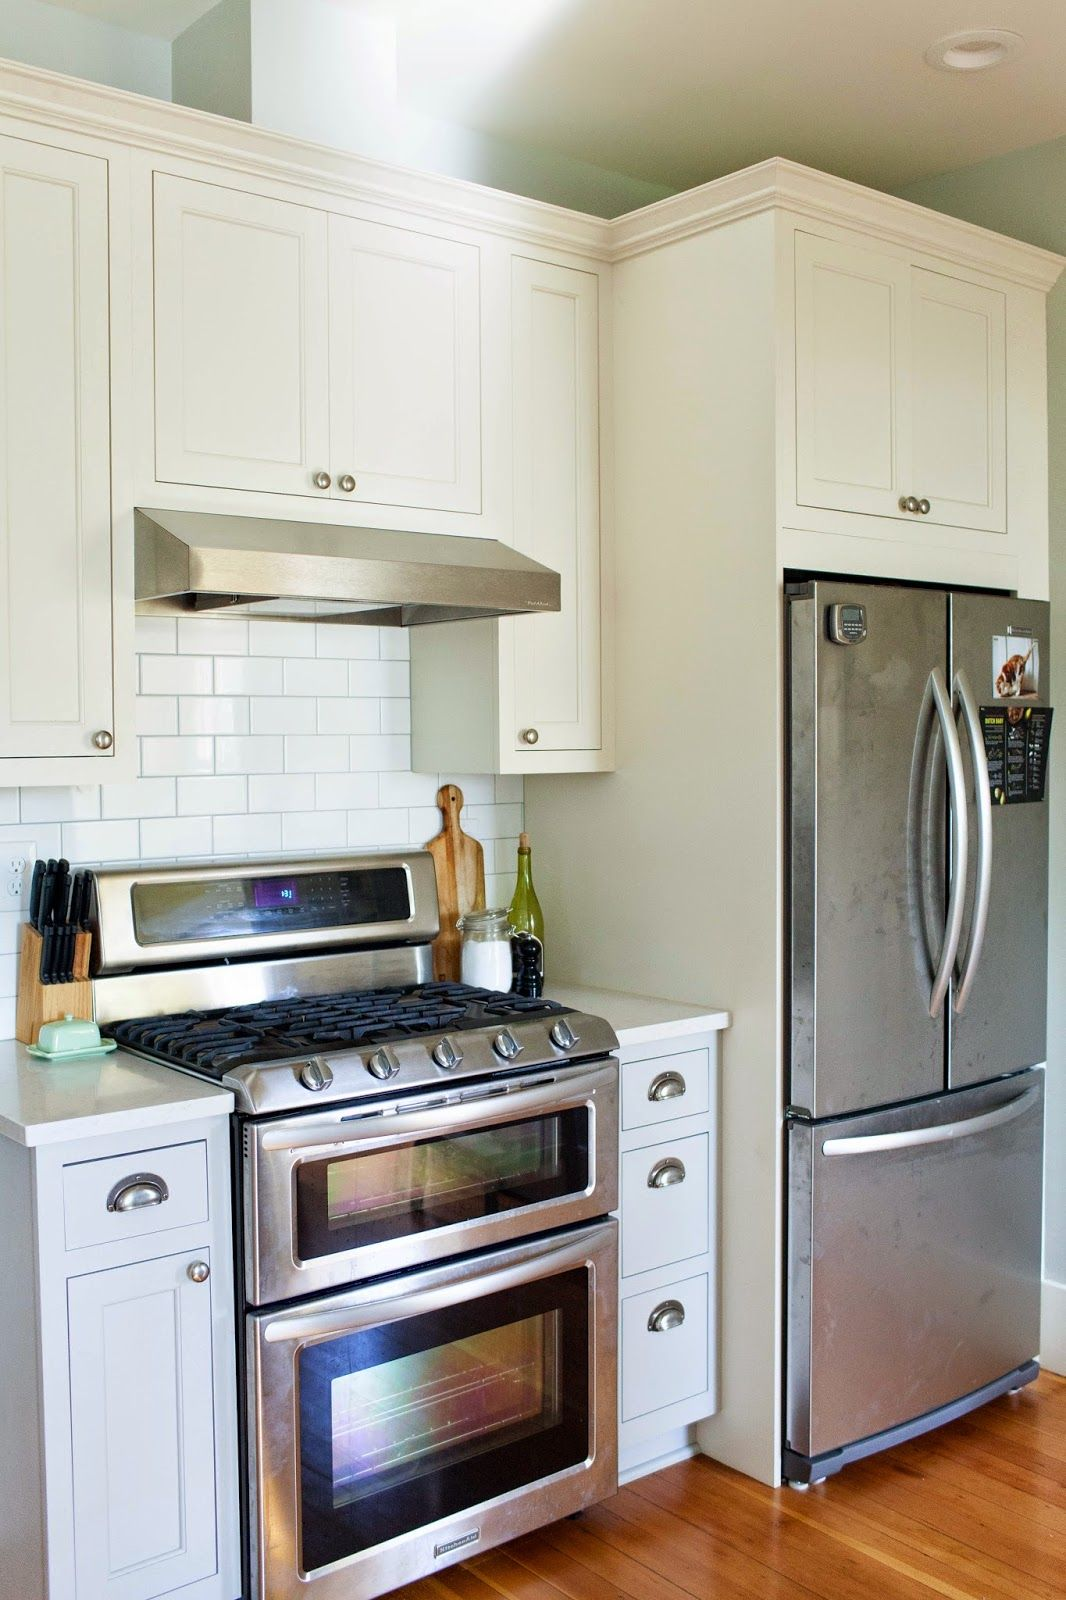 pinterest kitchen remodel ideas king cabinets hummingbird high a desserts and baking food blog in